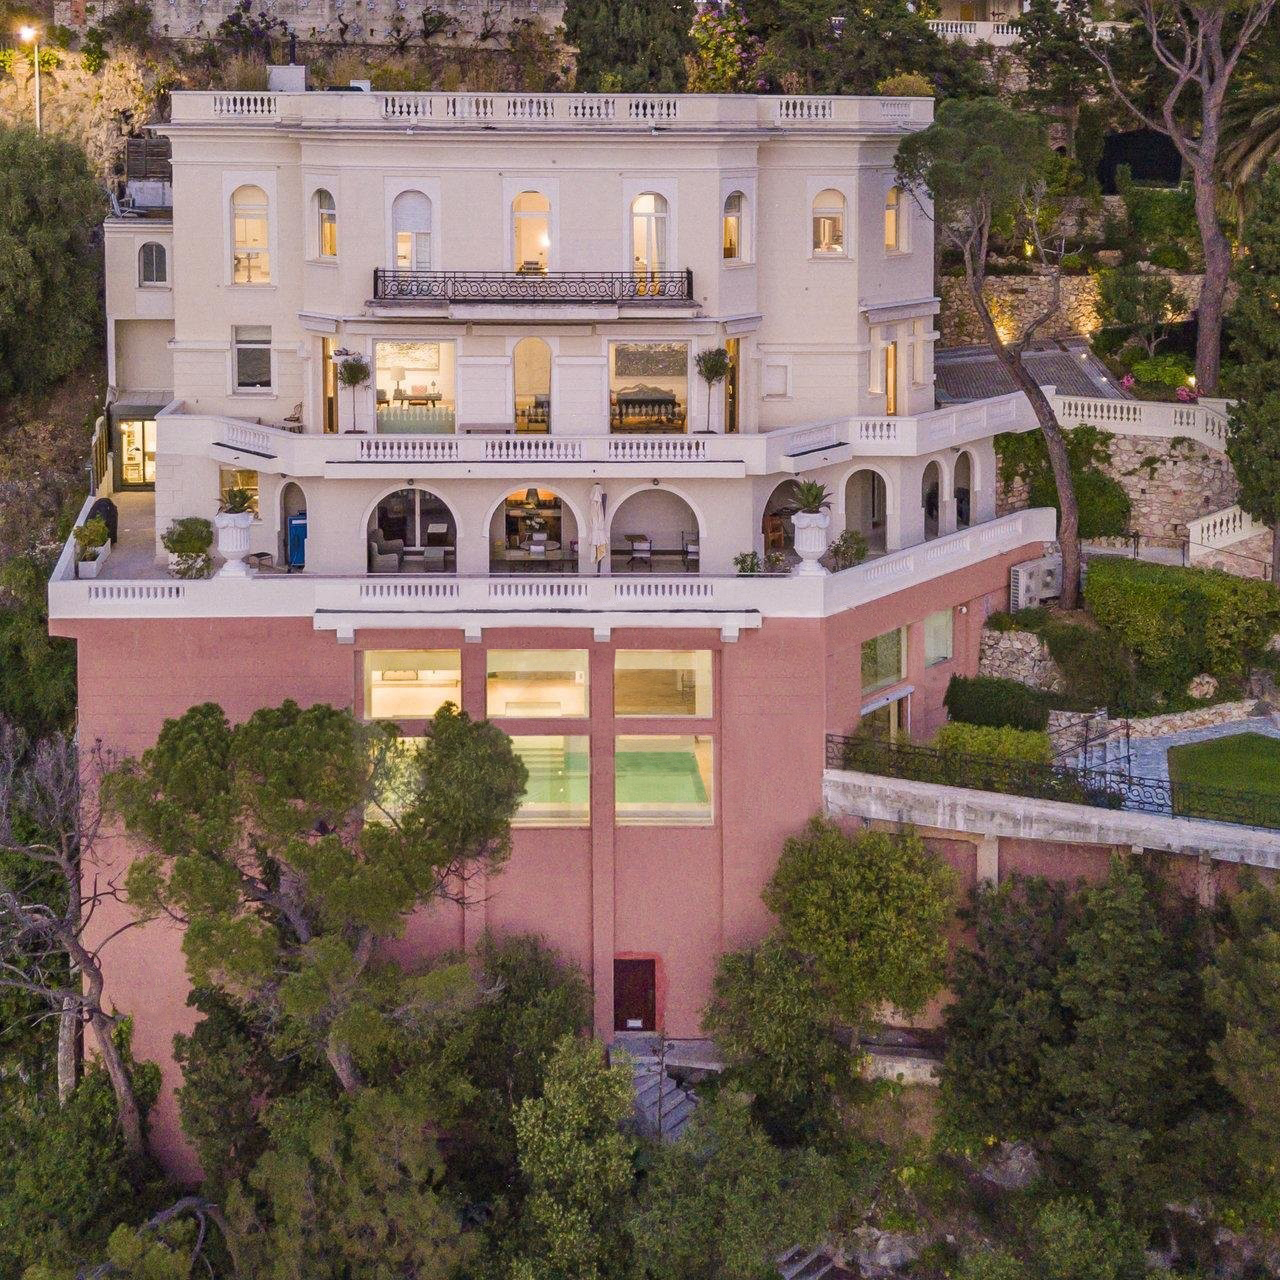 Sean Connery's house in Nice, France, with price: eighty year old actor sells his property